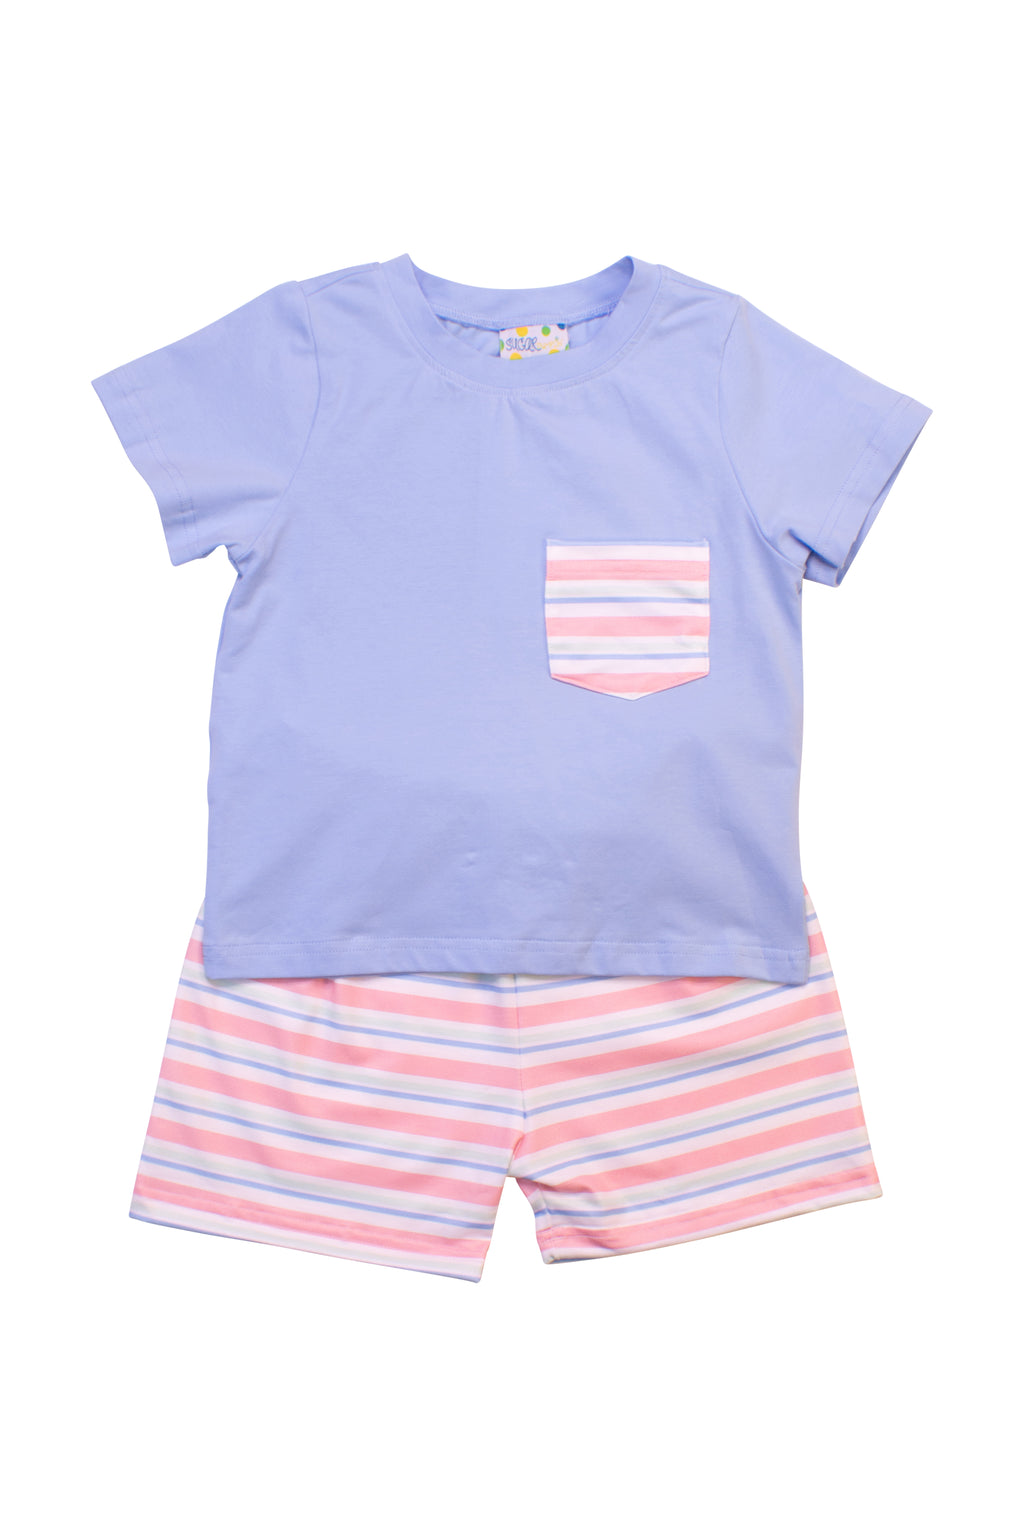 Boys Stylin' Stripes Shorts Set